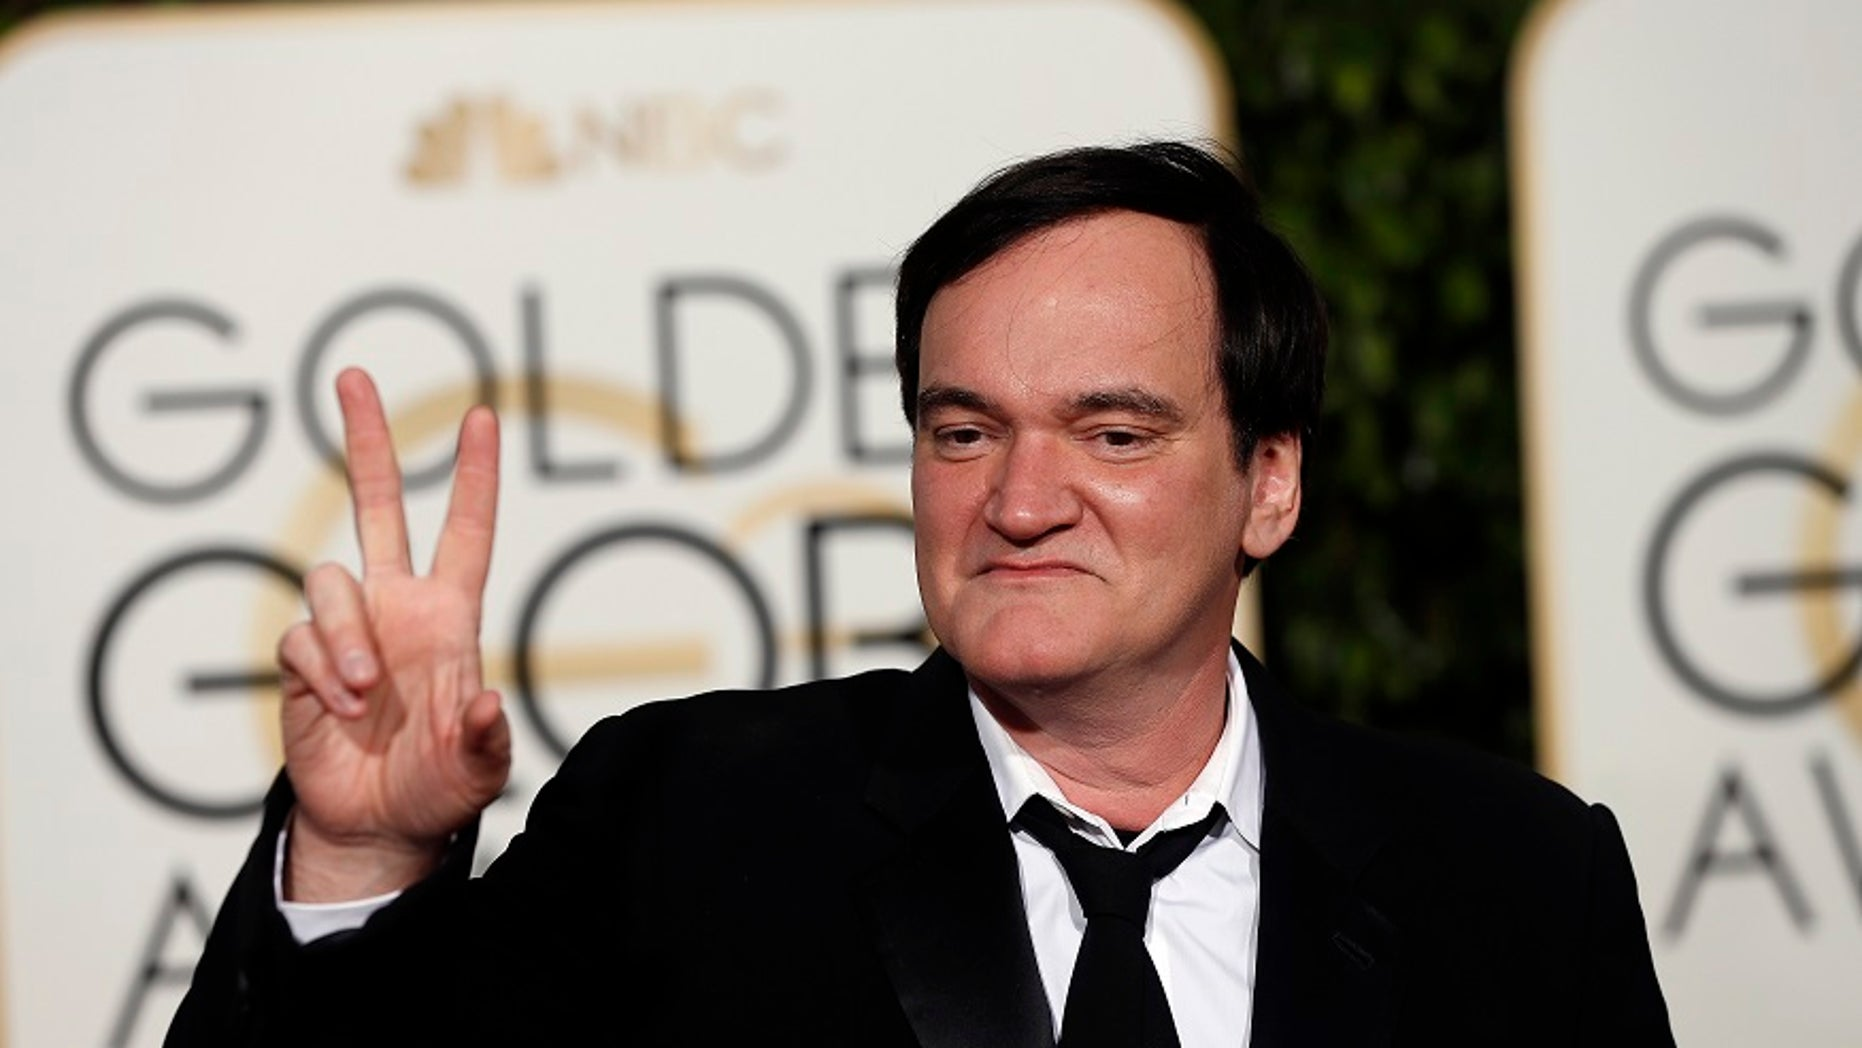 Director Quentin Tarantino is in the beginning phases of creating a new movie that will focus on the Manson Family murders.